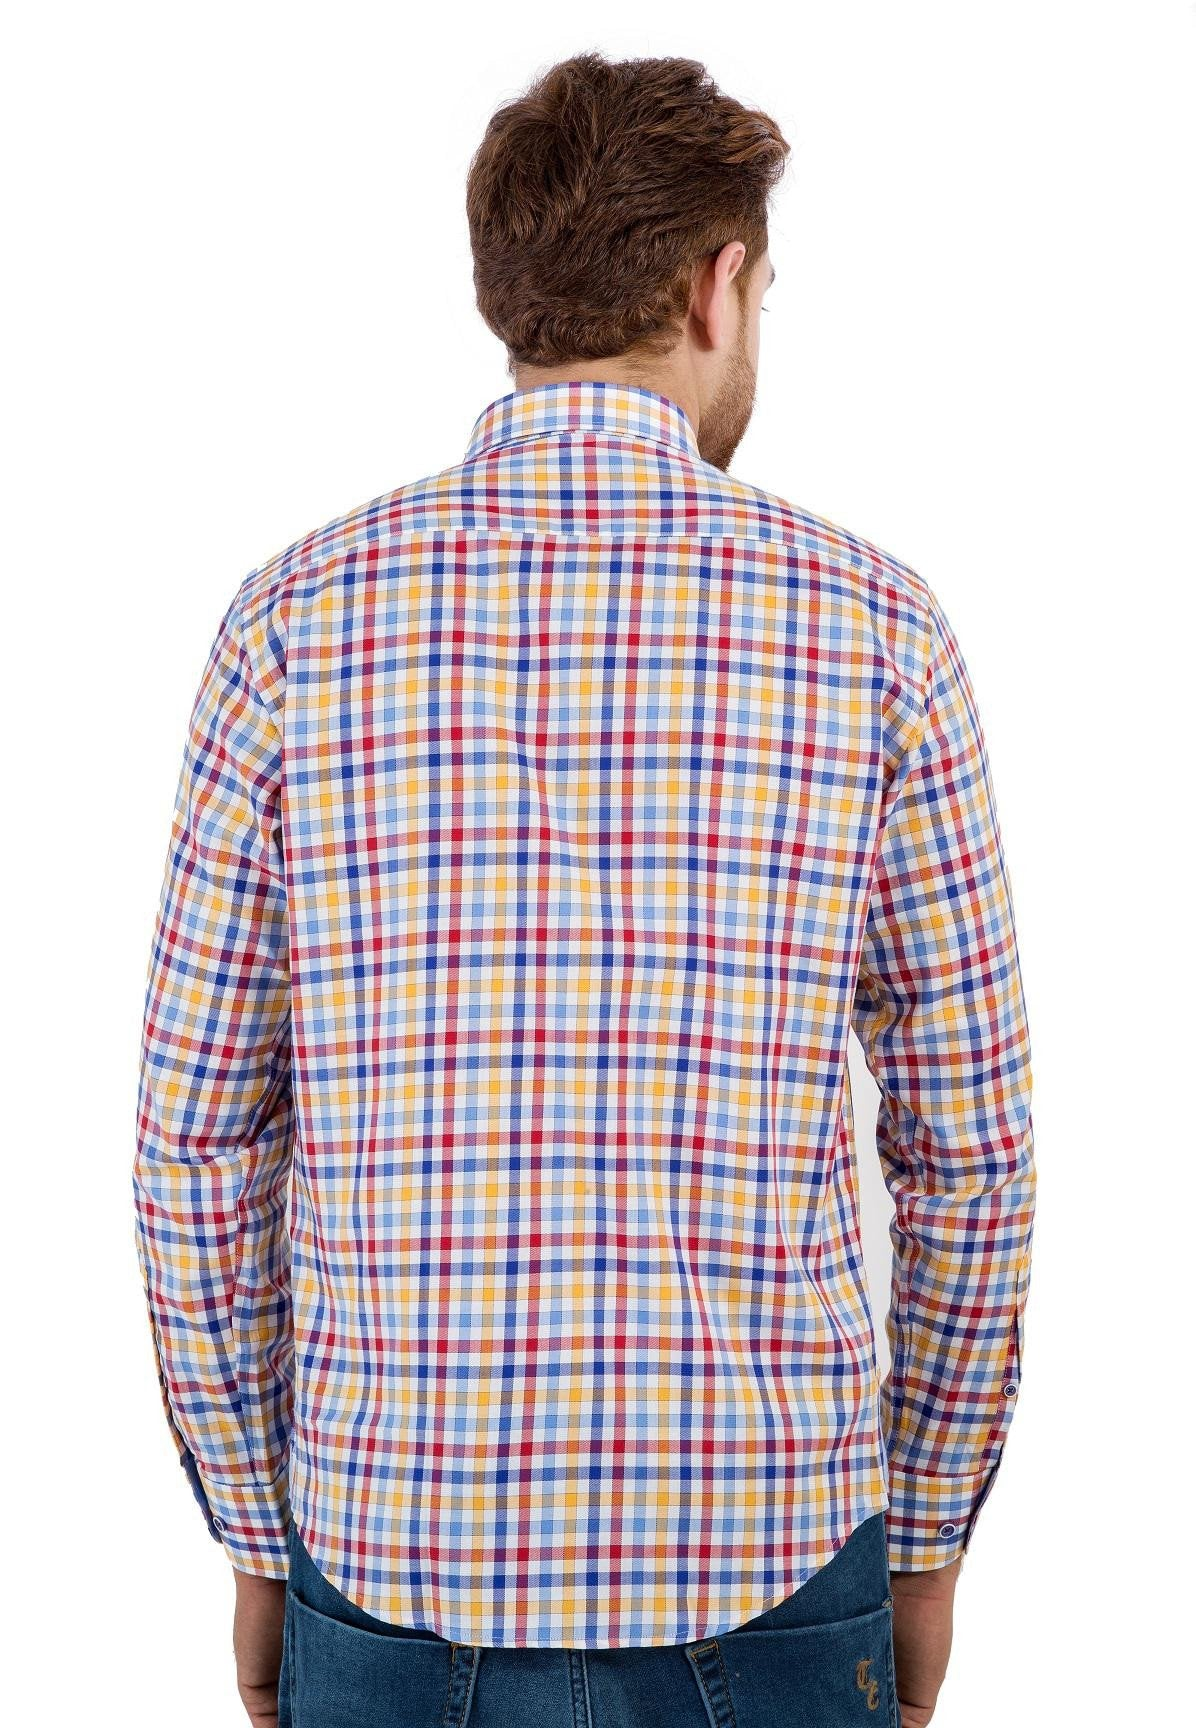 Colored Checkered Shirt